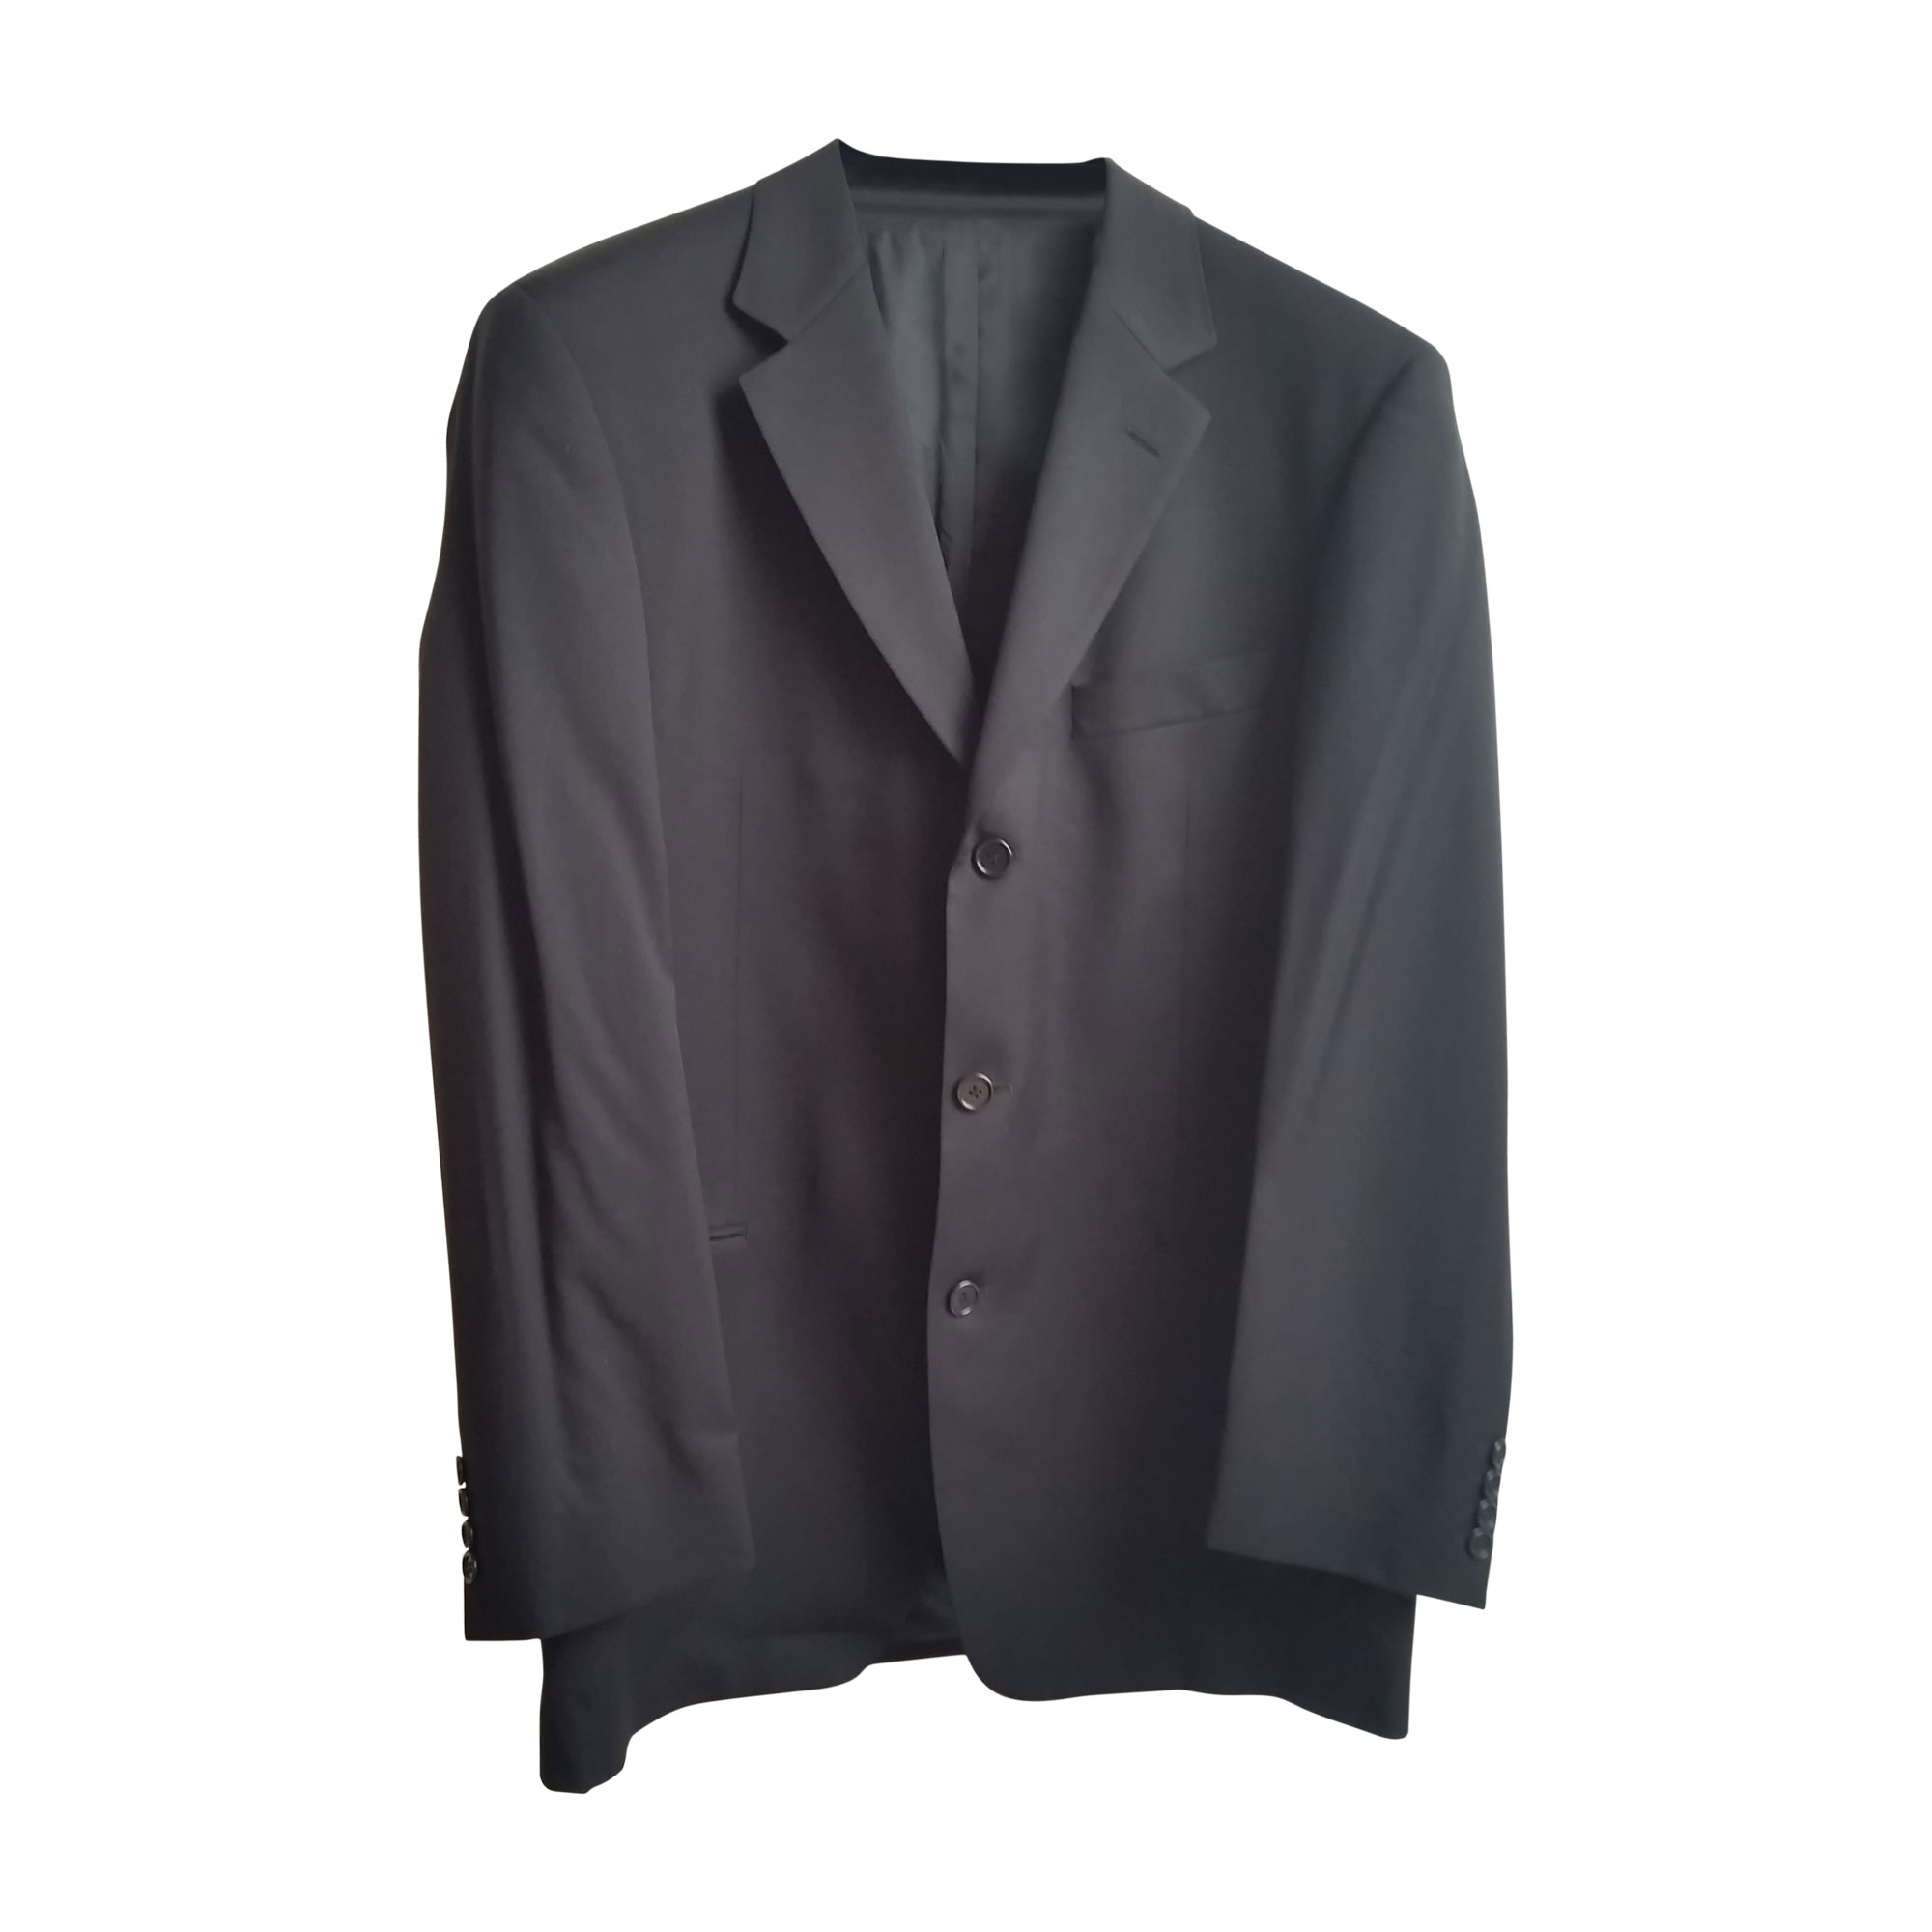 Costume complet HUGO BOSS Noir